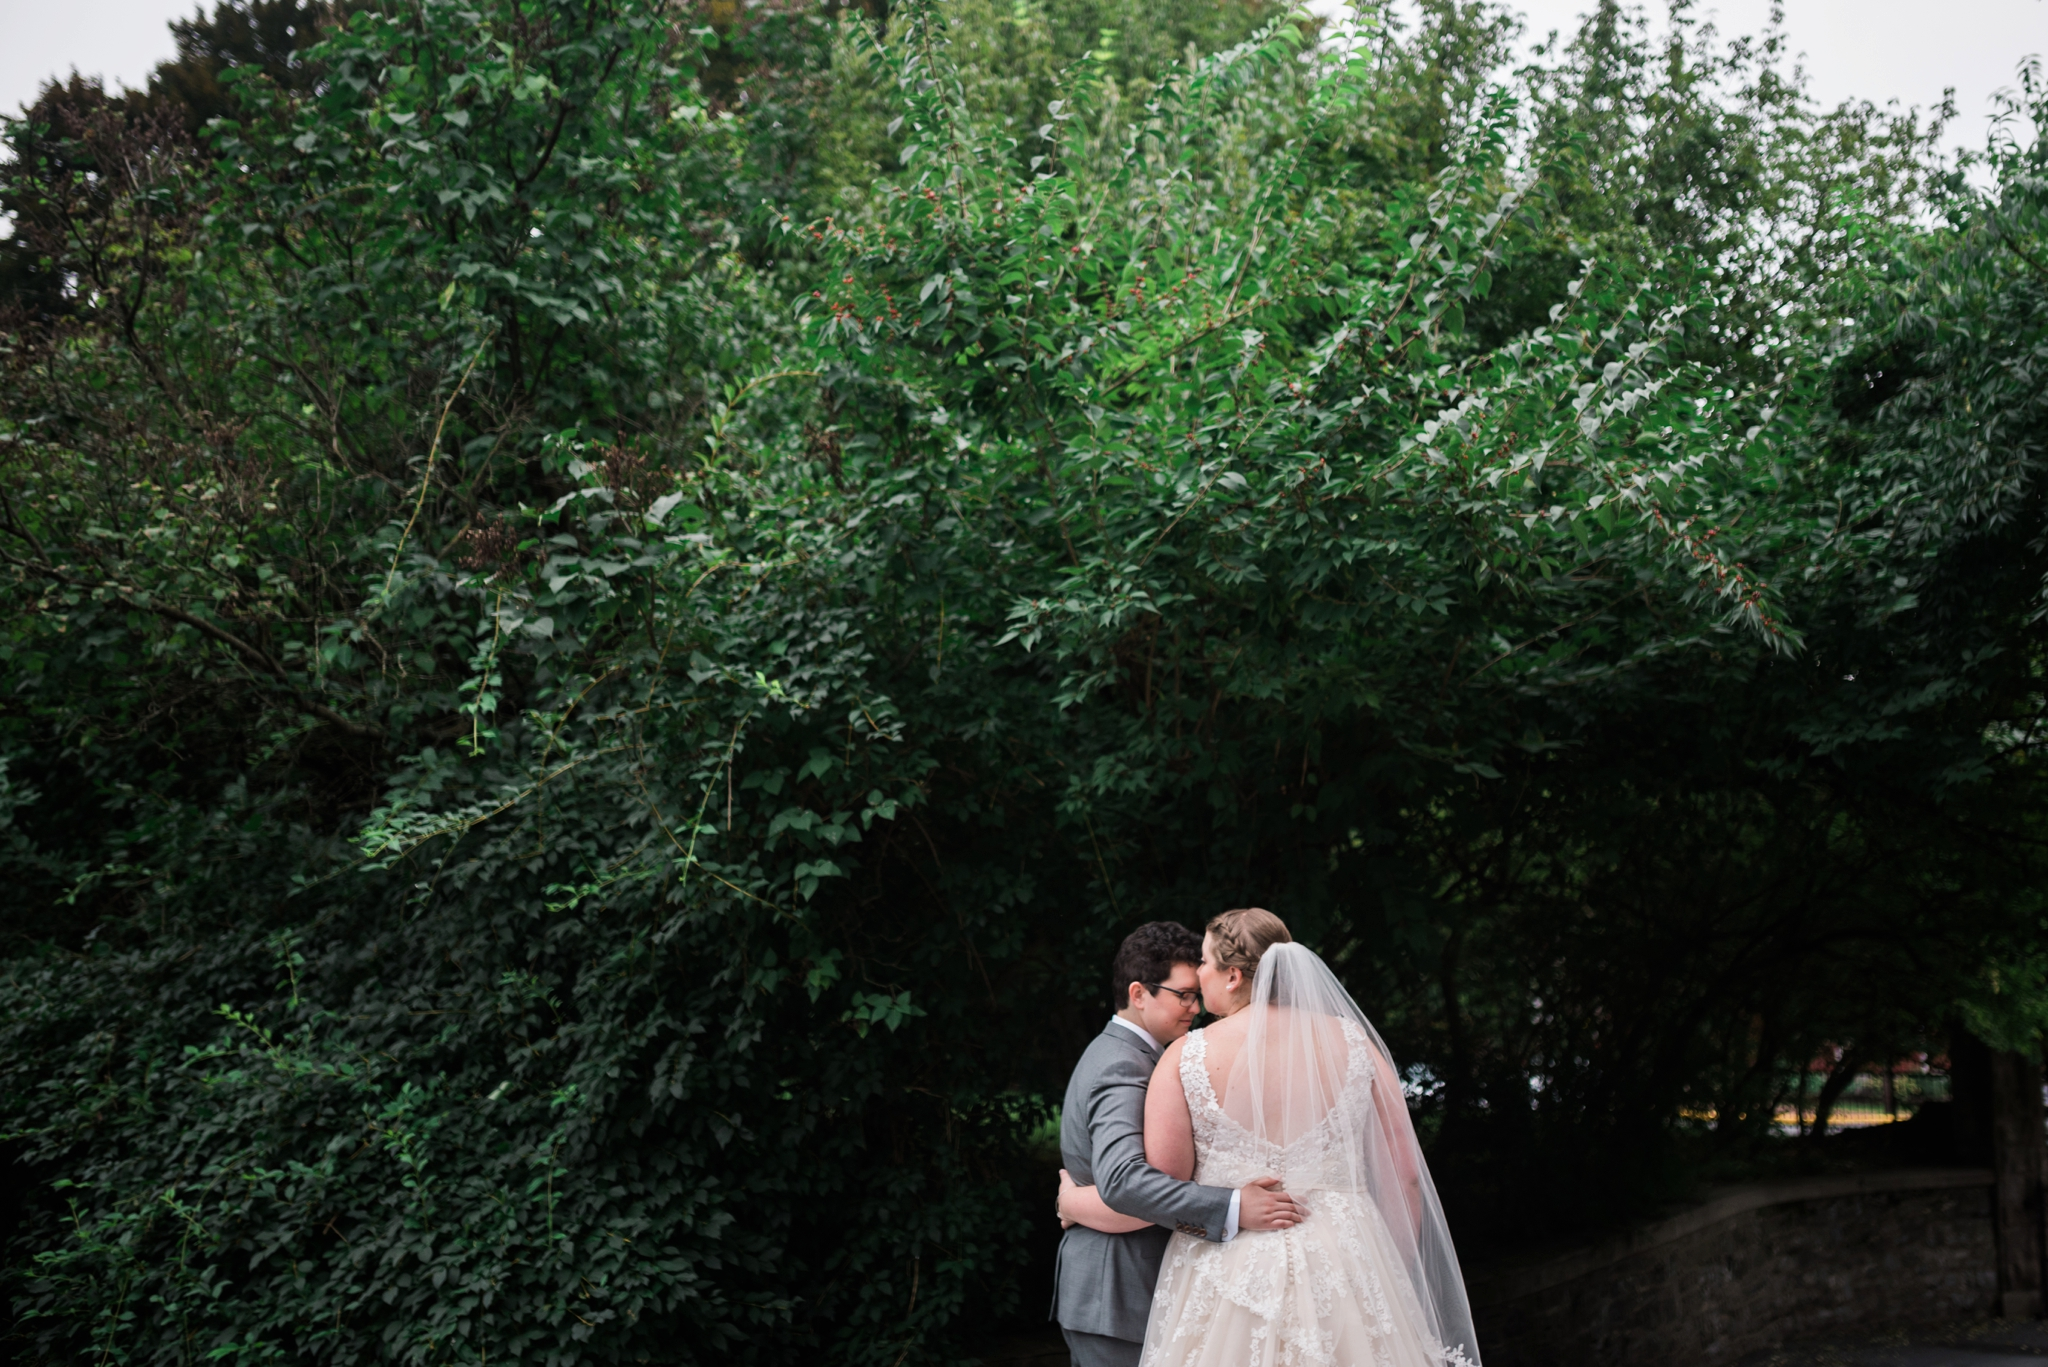 Emily Grace Photography, Reading PA Wedding Photographer, Stirling Guest Hotel, Same Sex Gay Wedding